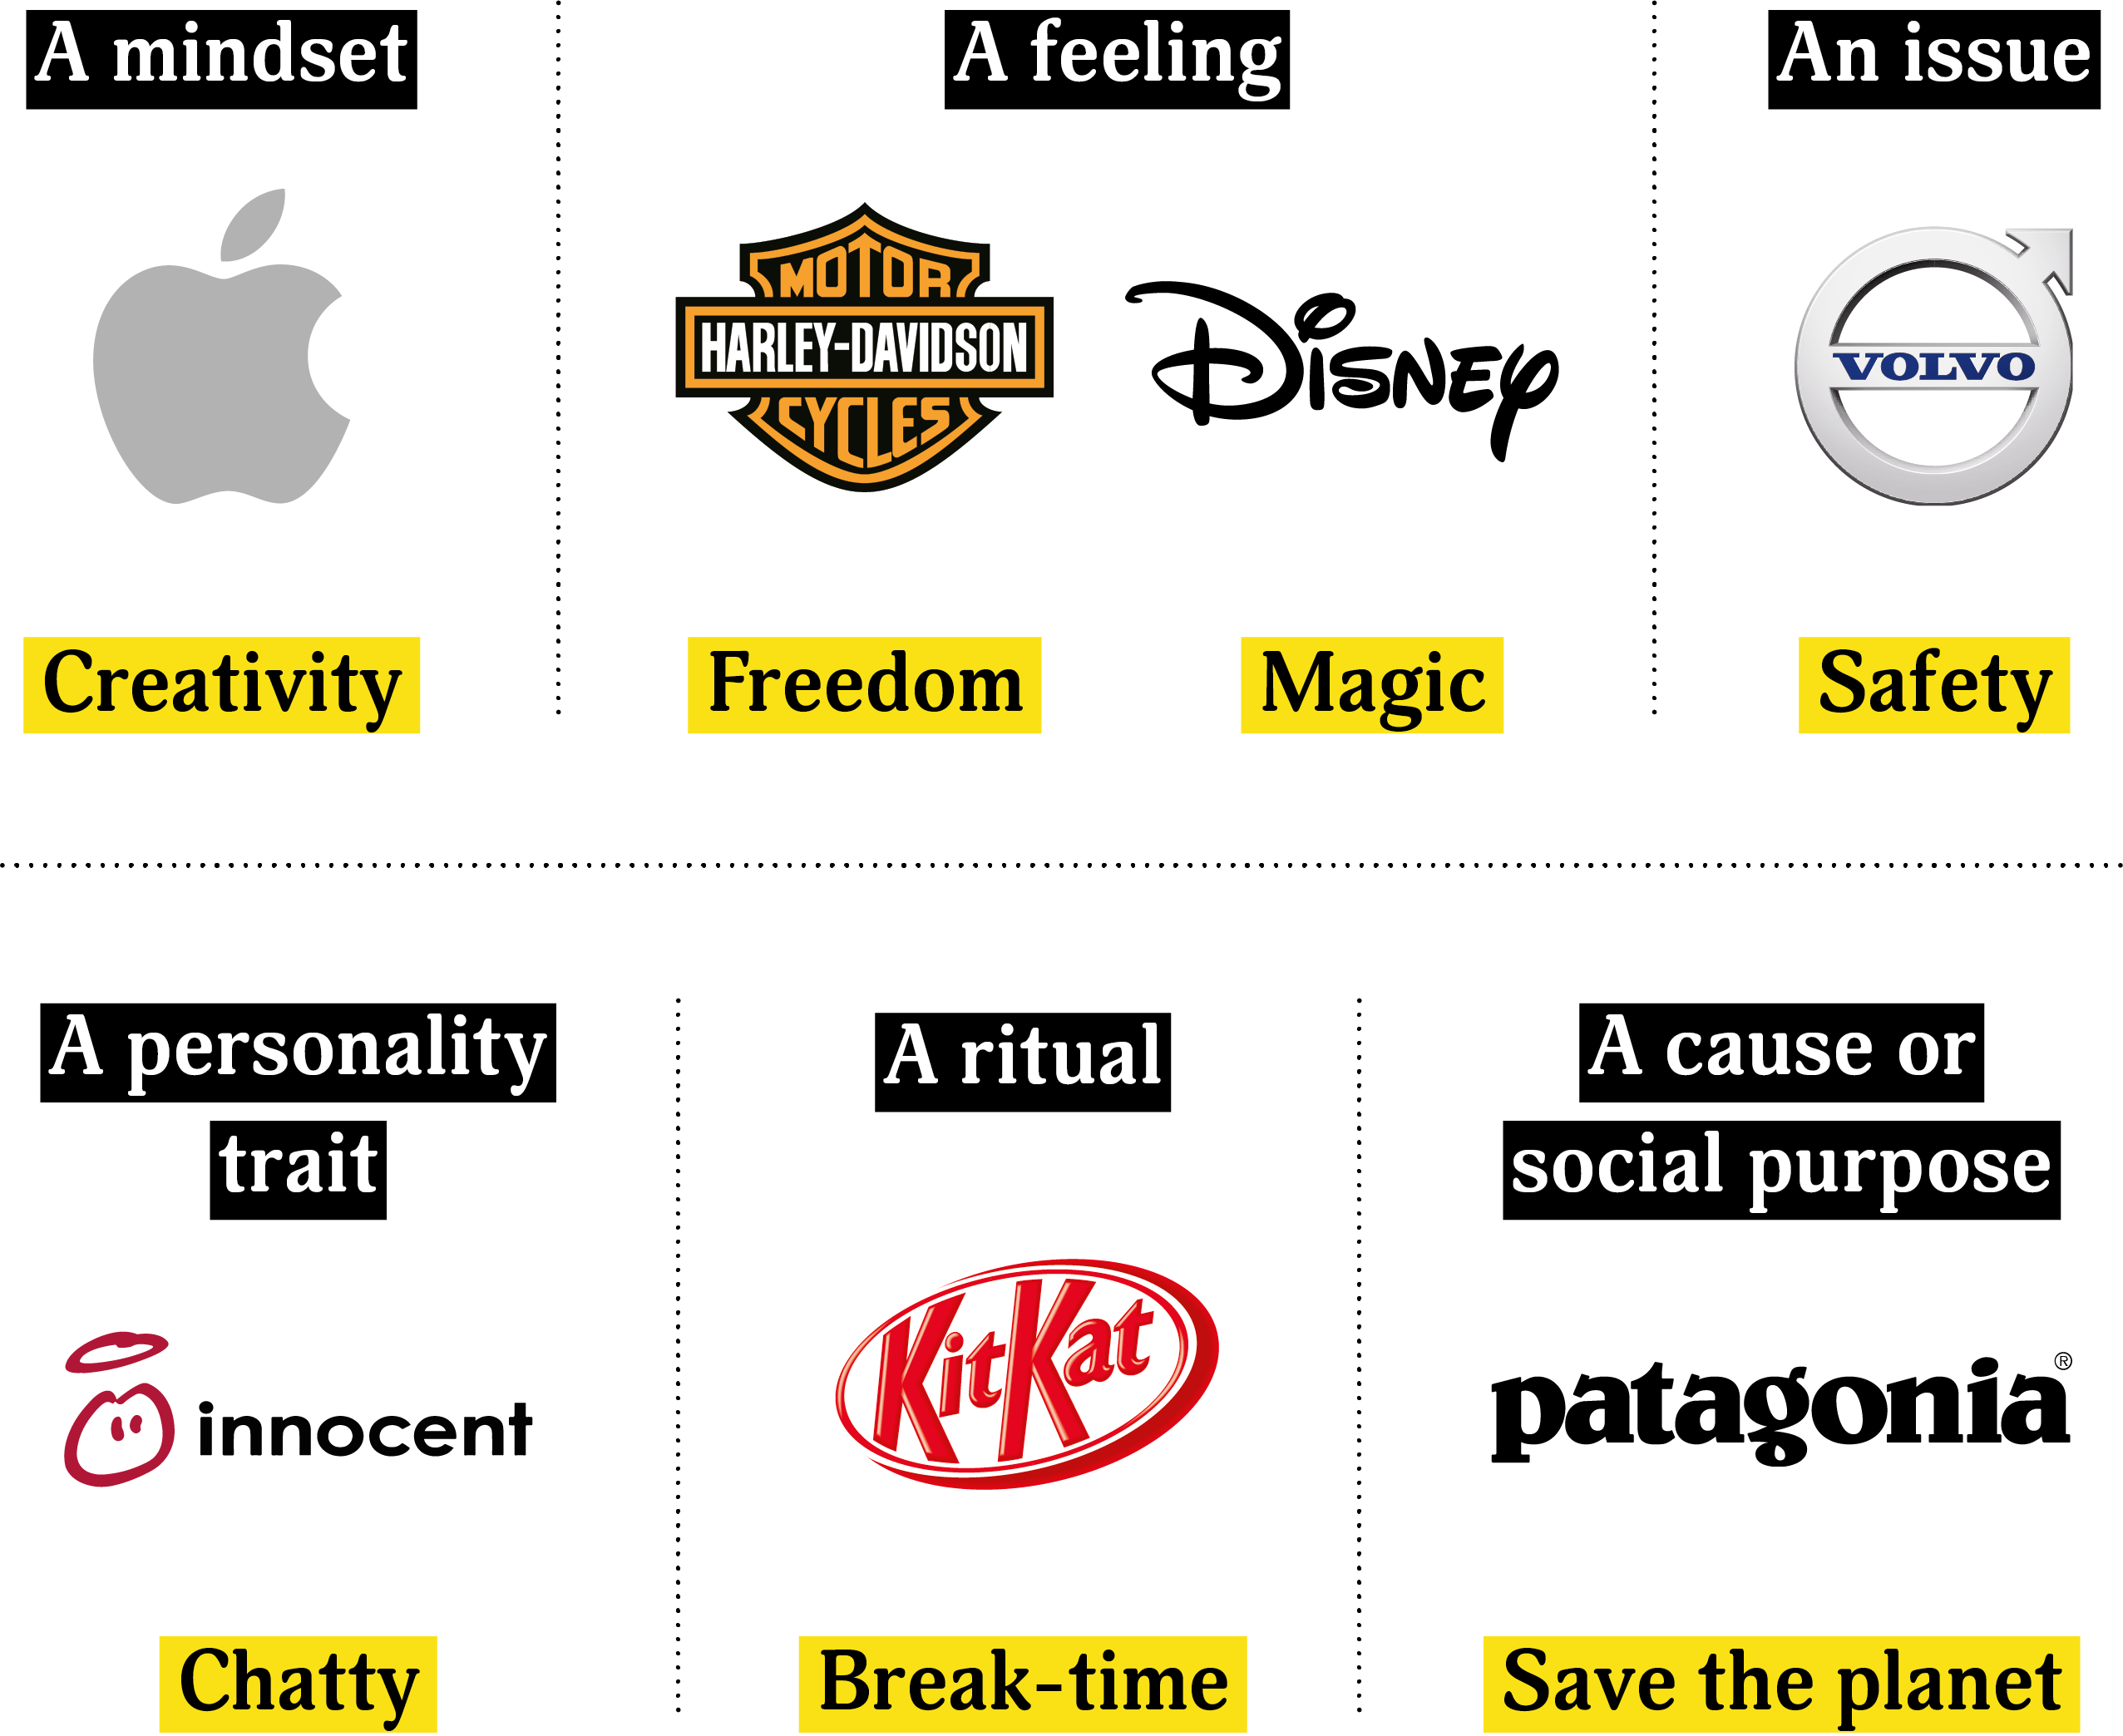 Brands with ideas. Apple = a mindset, creativity. Harley-Davidson = a feeling, freedom. Disney = a feeling, magic. Volvo = an issue, safety. Innoceny = a personality, chatty. KitKat = a ritual, break-time. Patagonia = a cause, save the planet.